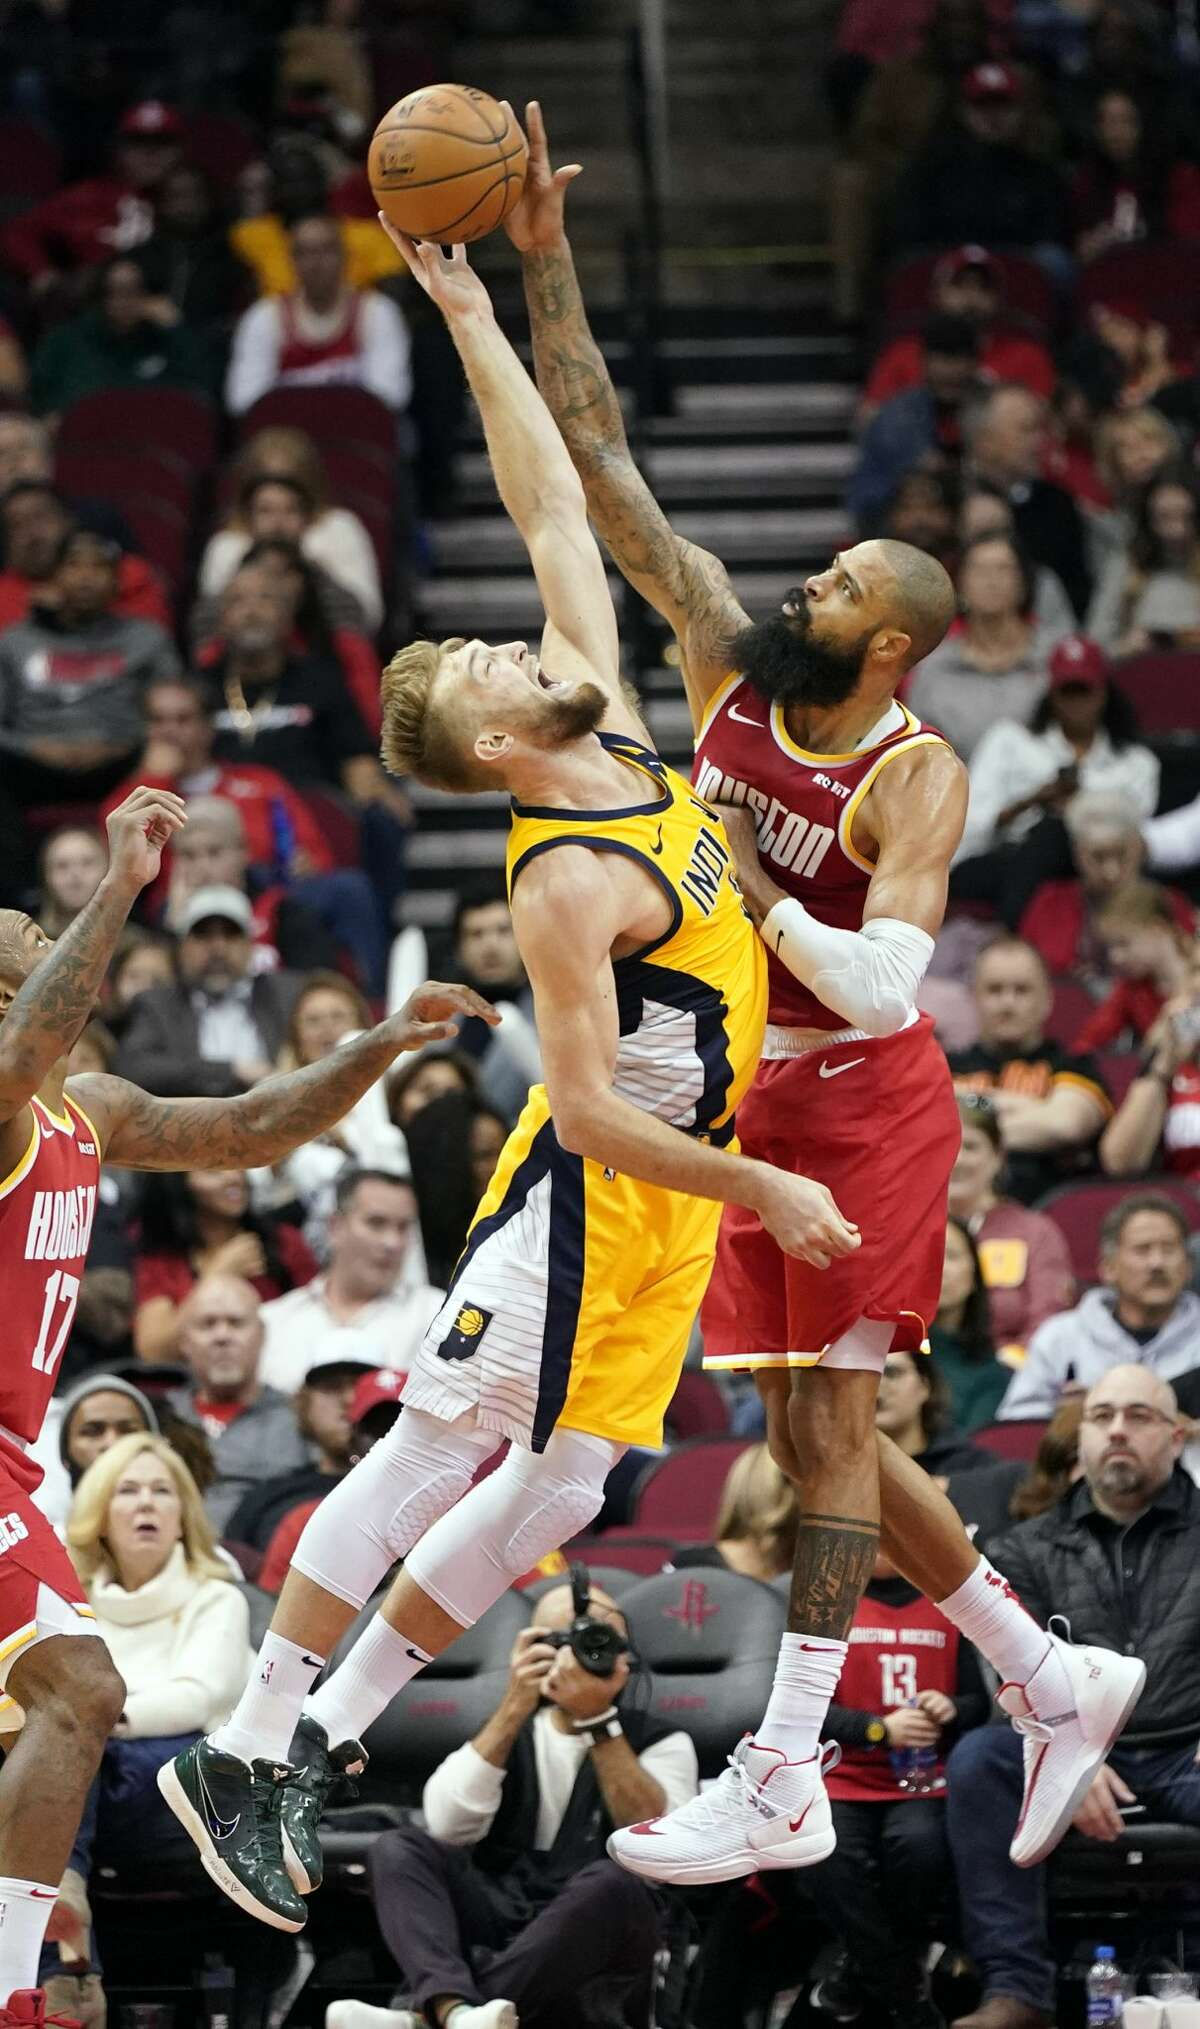 Indiana Pacers' Domantas Sabonis, left, has his shot blocked by Houston Rockets' Tyson Chandler during the second half of an NBA basketball game Friday, Nov. 15, 2019, in Houston. The Rockets won 111-102. (AP Photo/David J. Phillip)